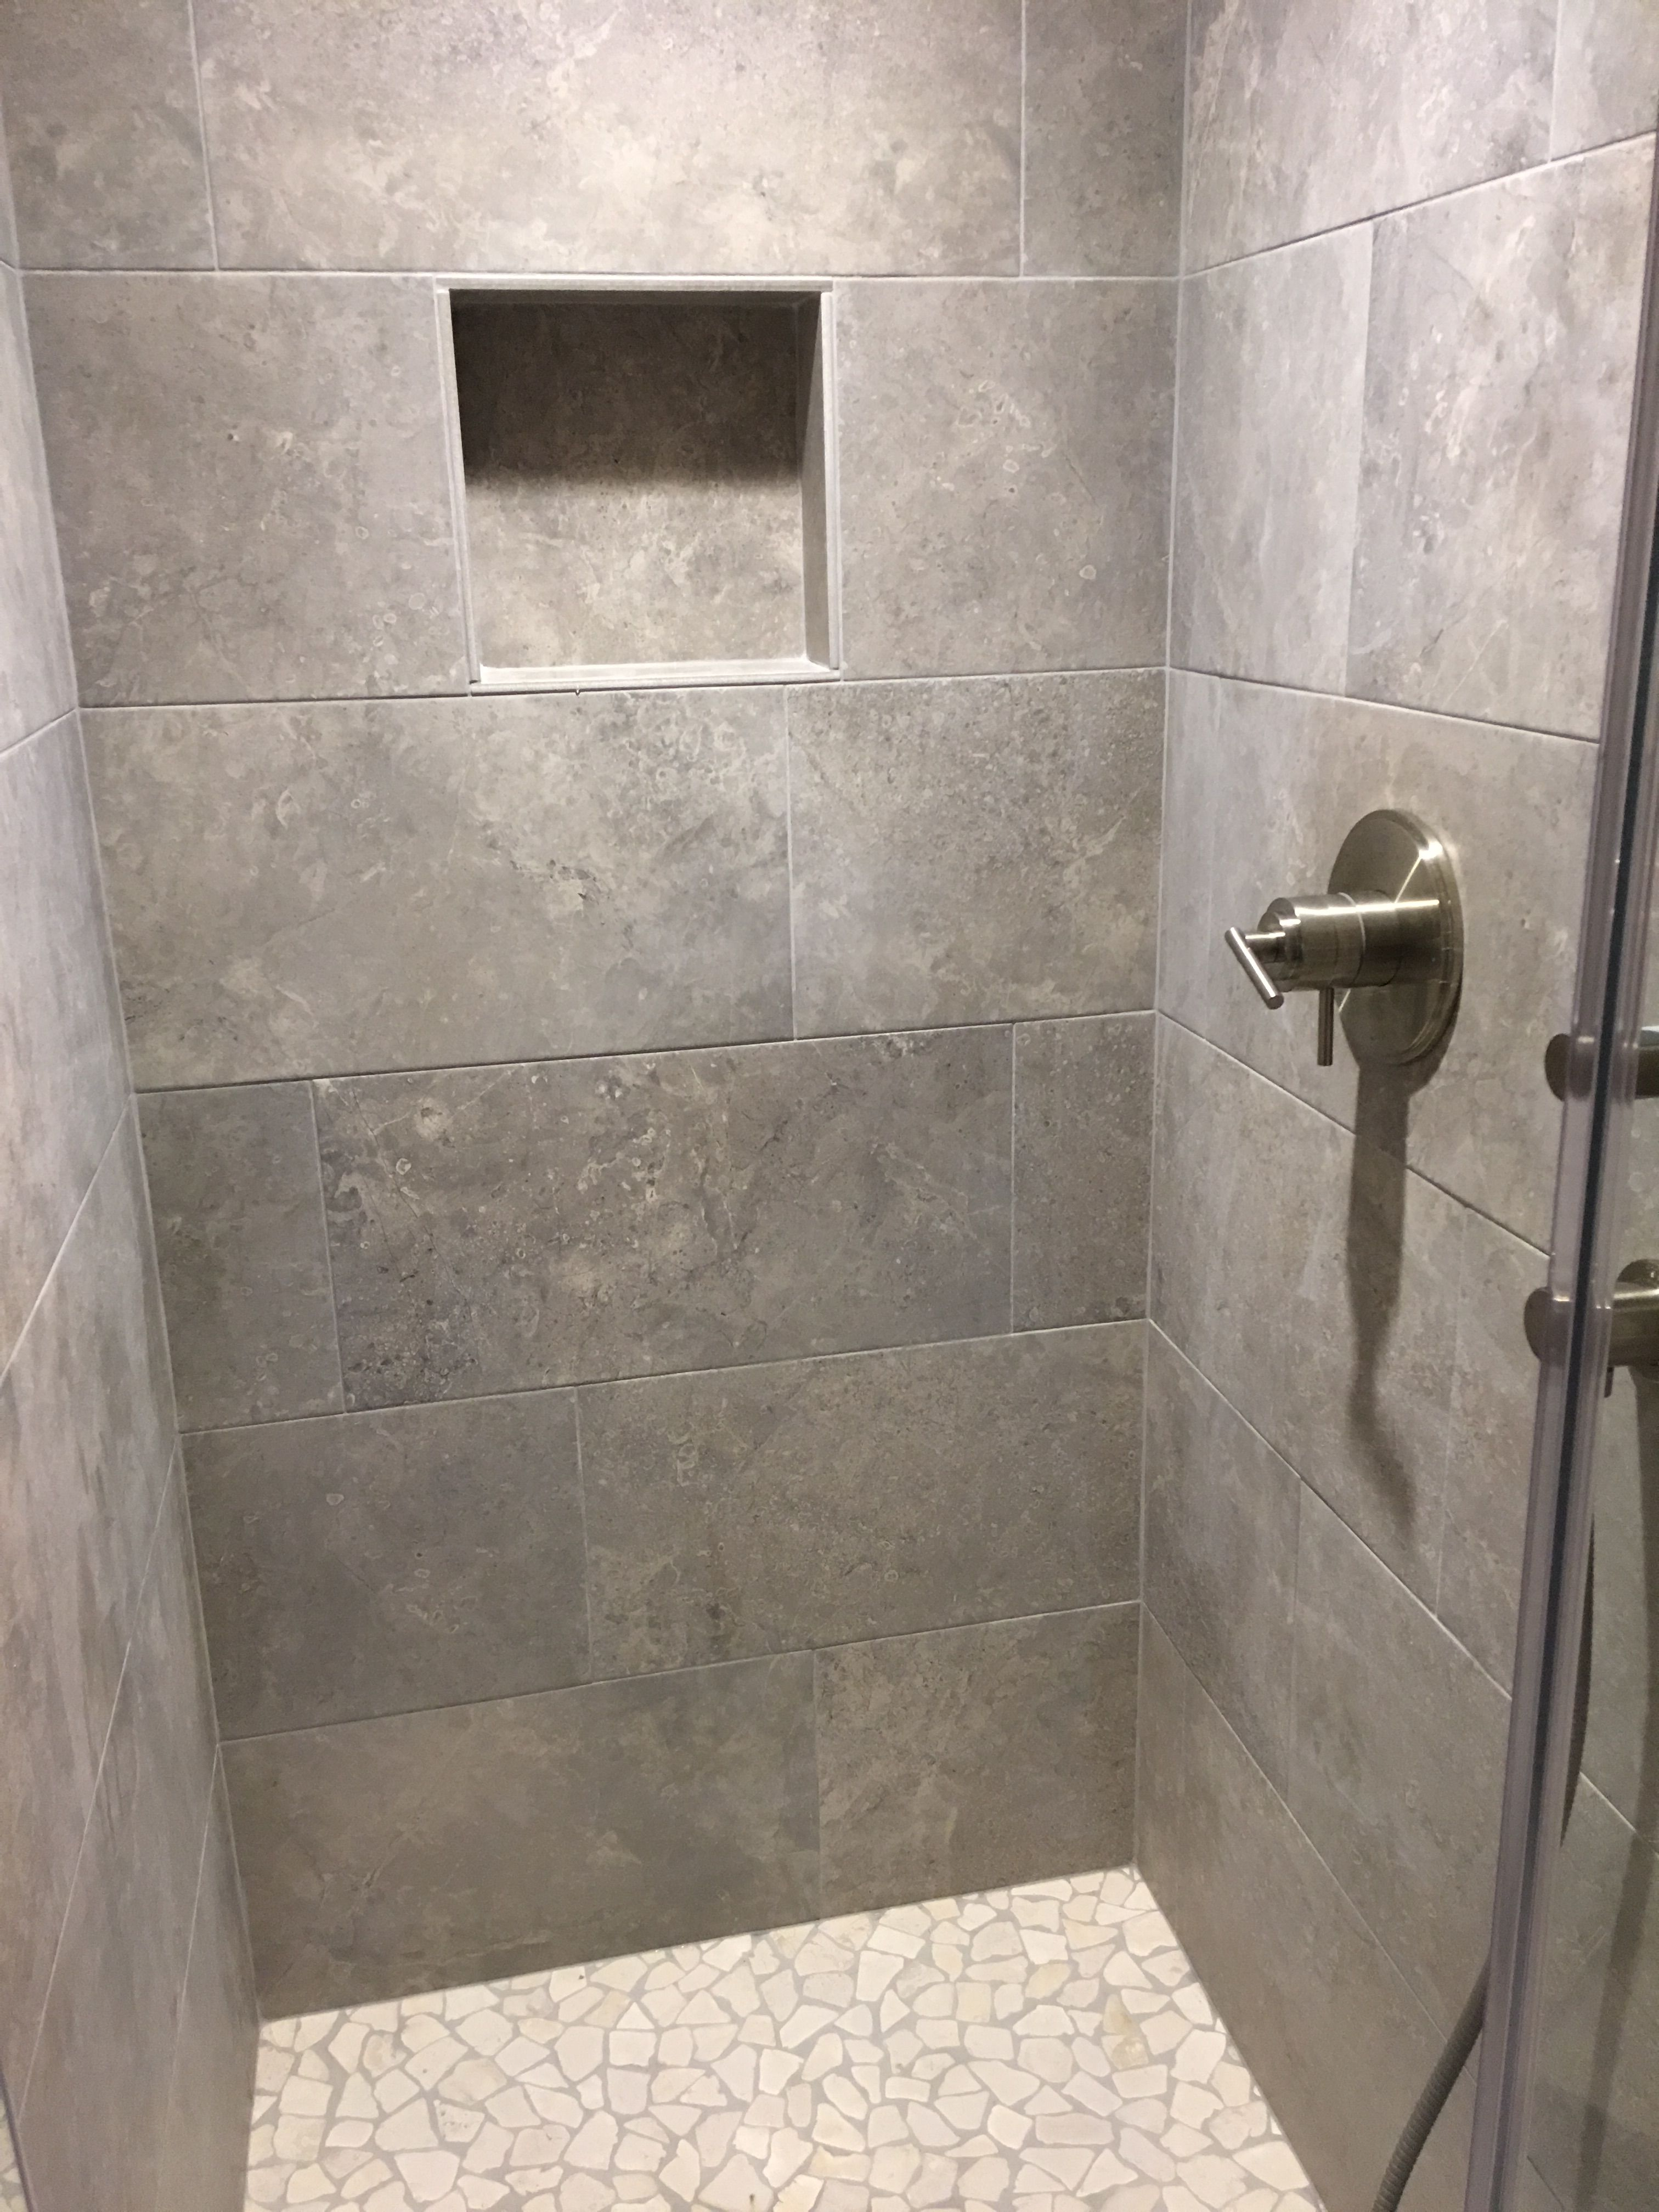 This Is The Finished Shower With Tiles From Lowes Floor Tiles